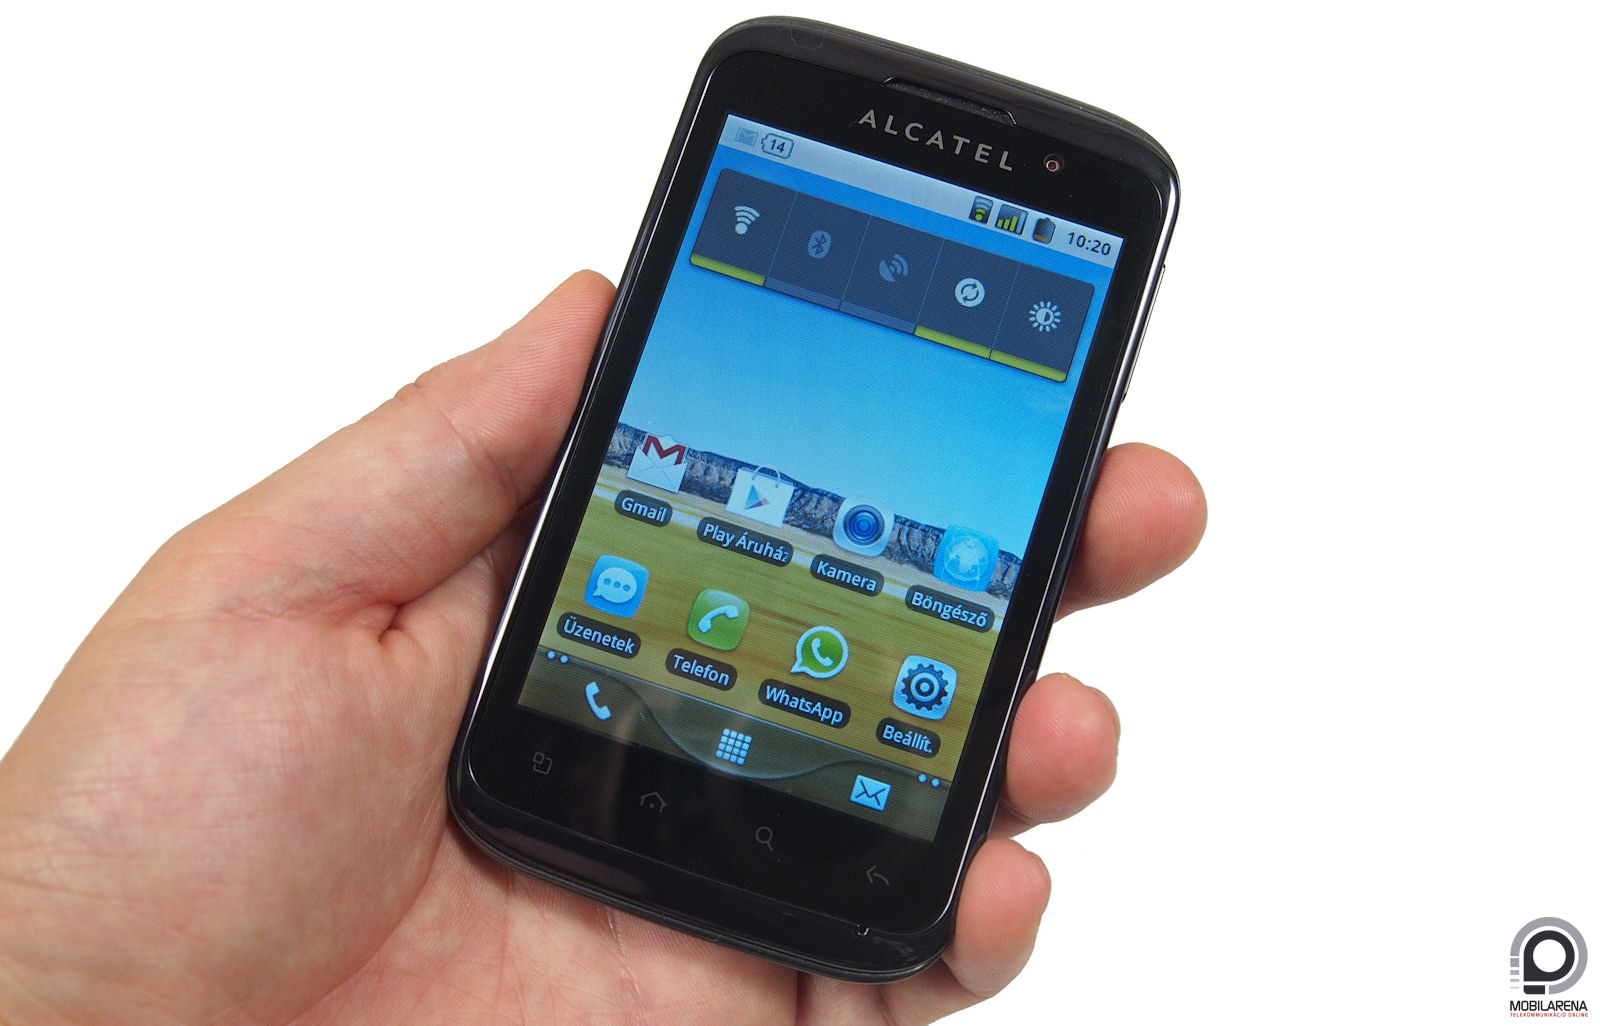 Alcatel One Touch 991 Android Manager